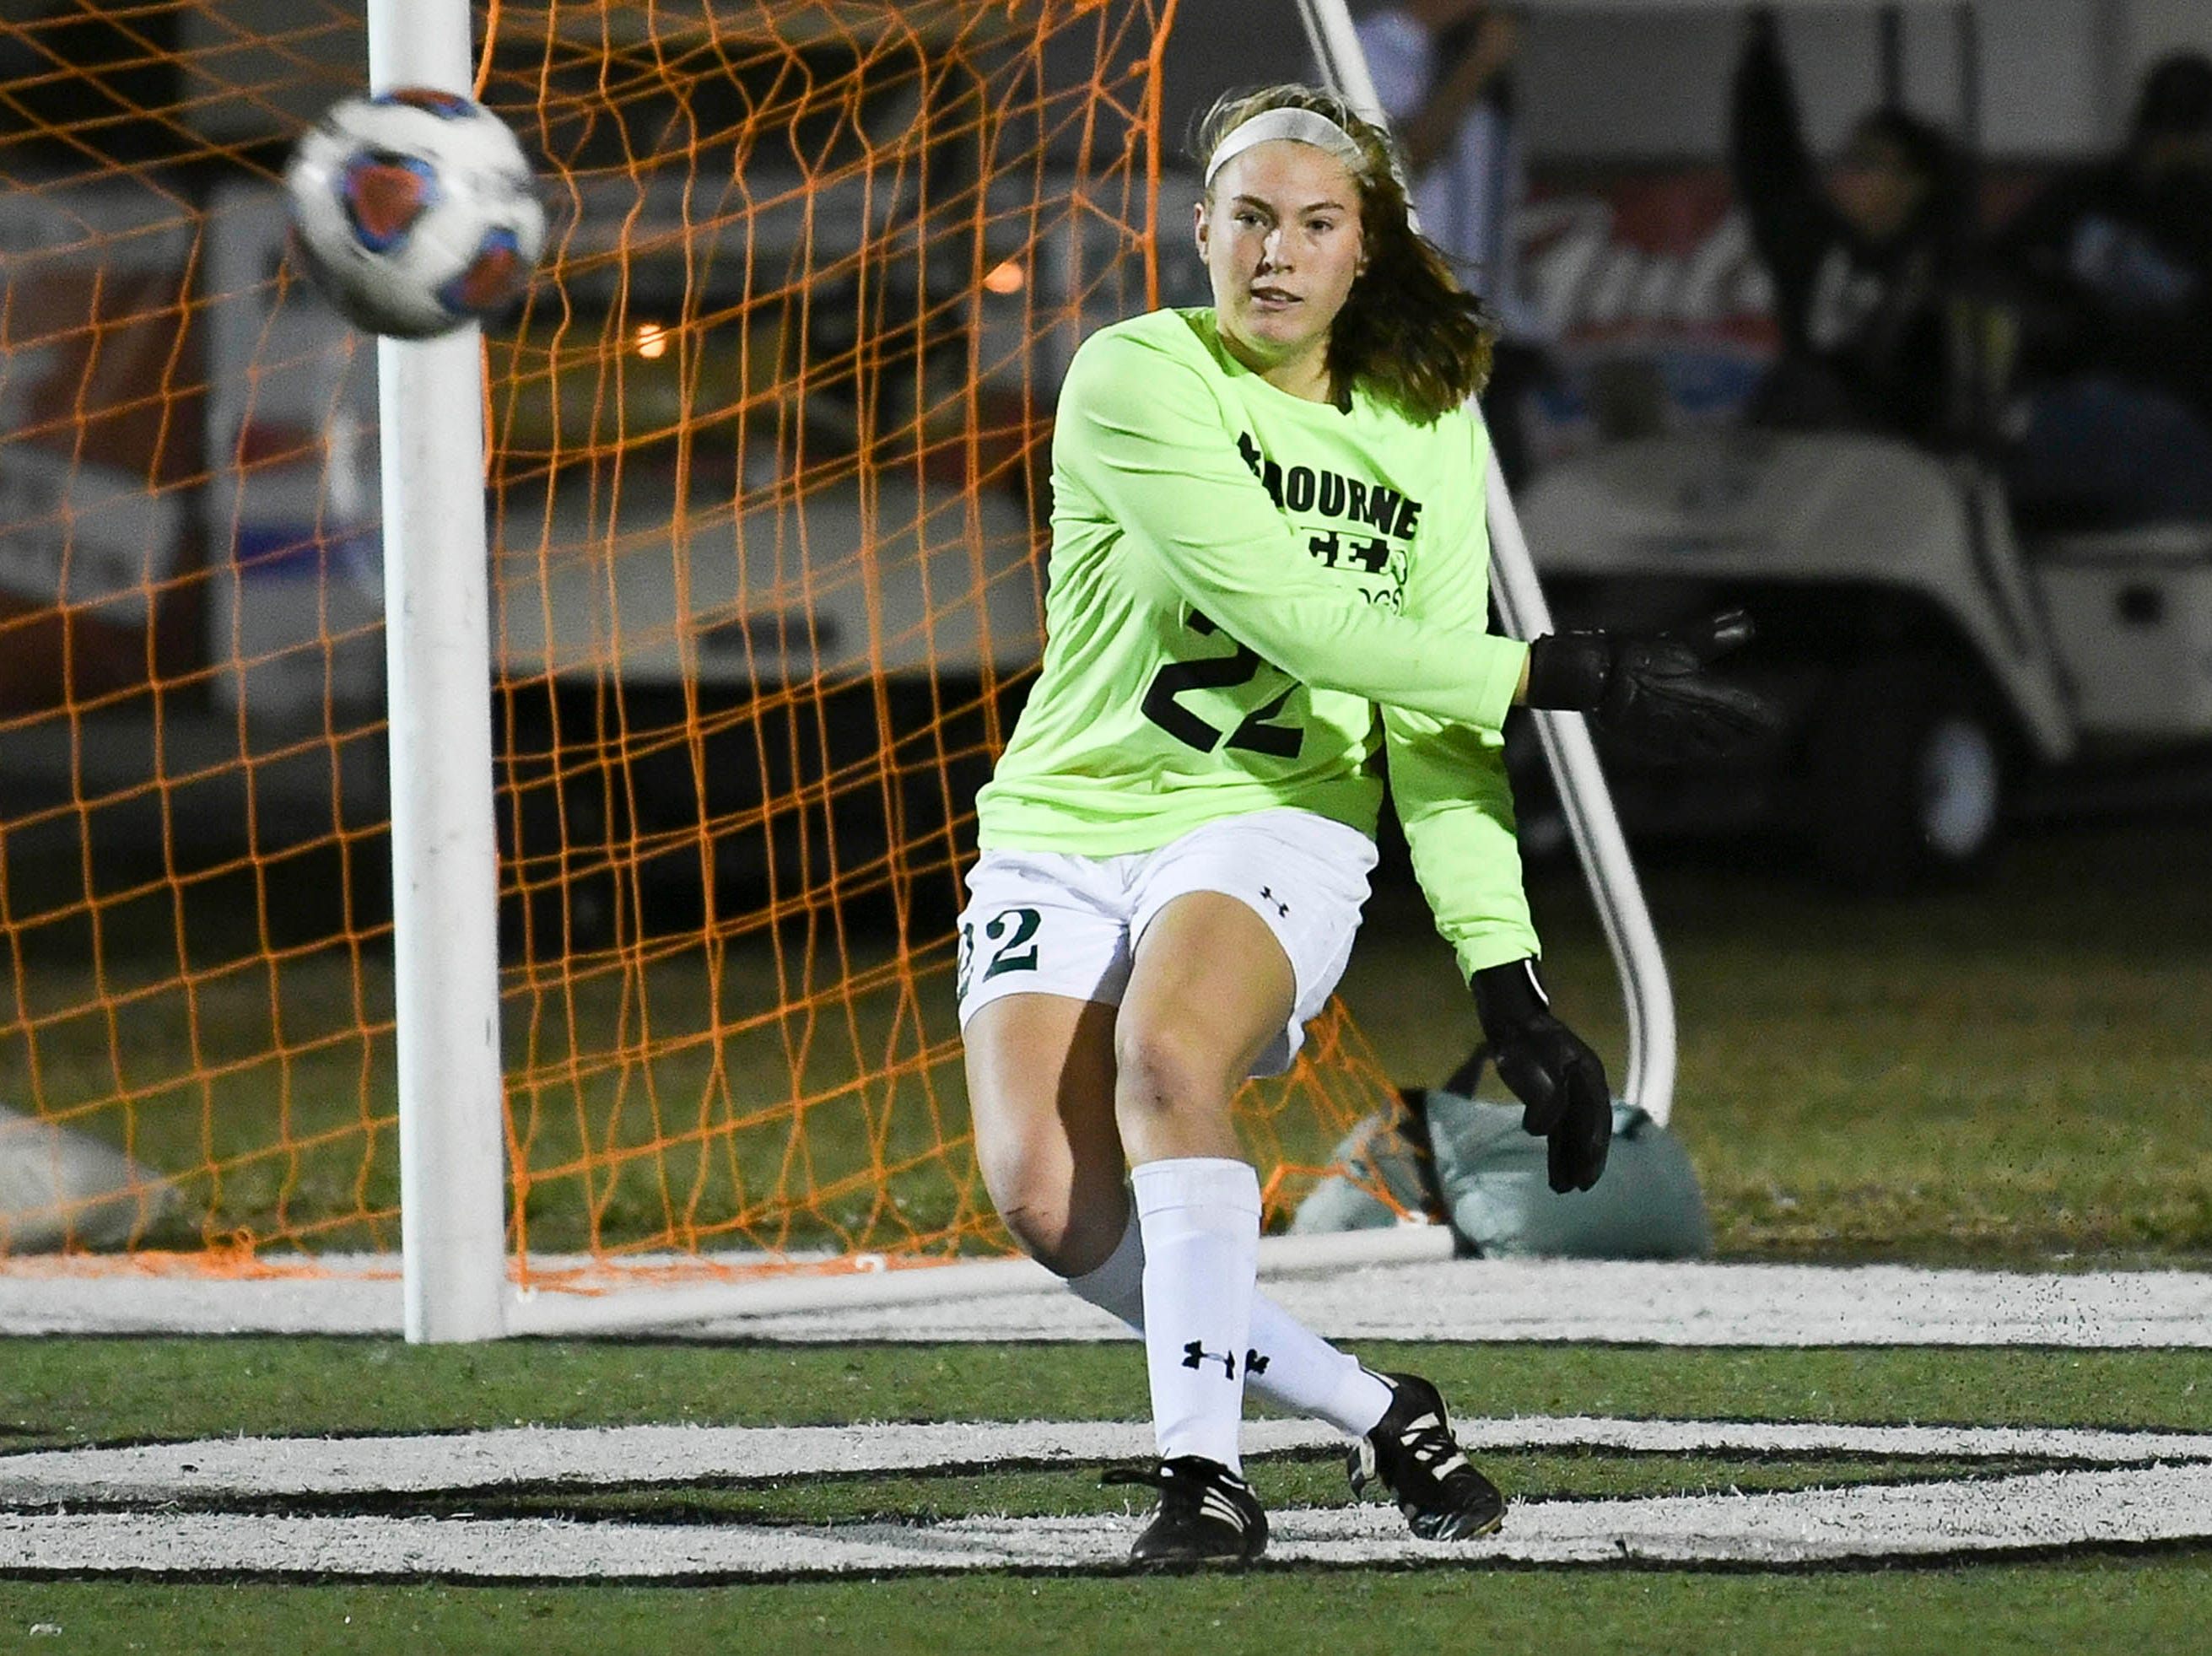 Melbourne goalkeeper Jessica Newton sends the ball into play during Thursday's game against Cypress Bay.